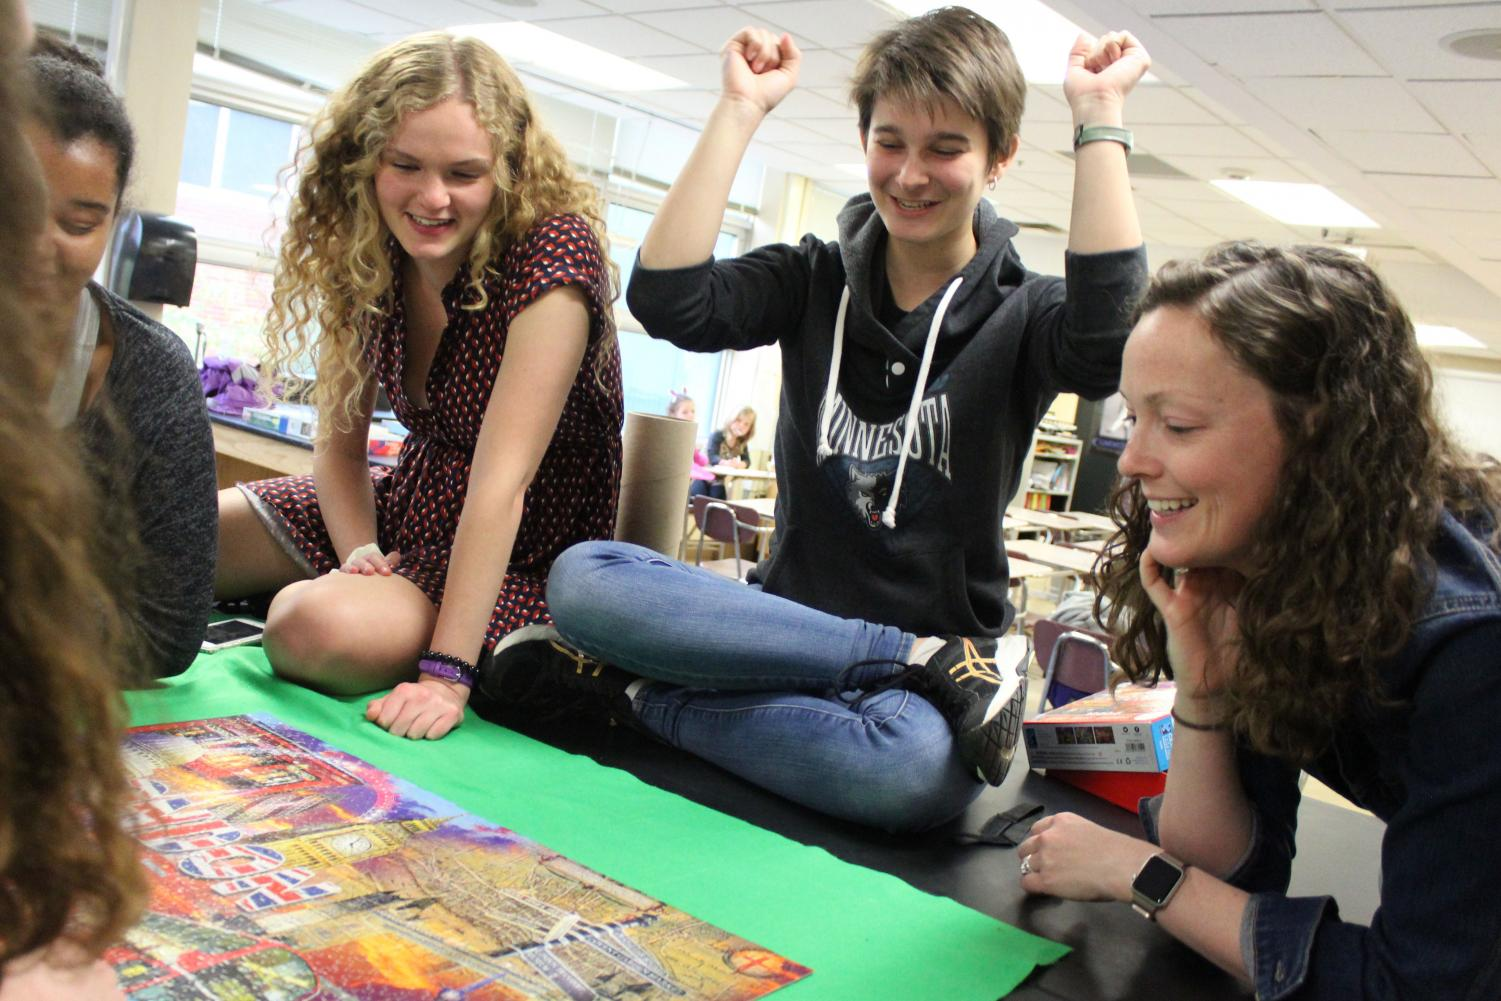 Senior Greta Long rejoices after placing the last piece in the puzzle at puzzle club May 23. Puzzle clubs leaders are seniors, and do not have a plan for next year, according to Long.